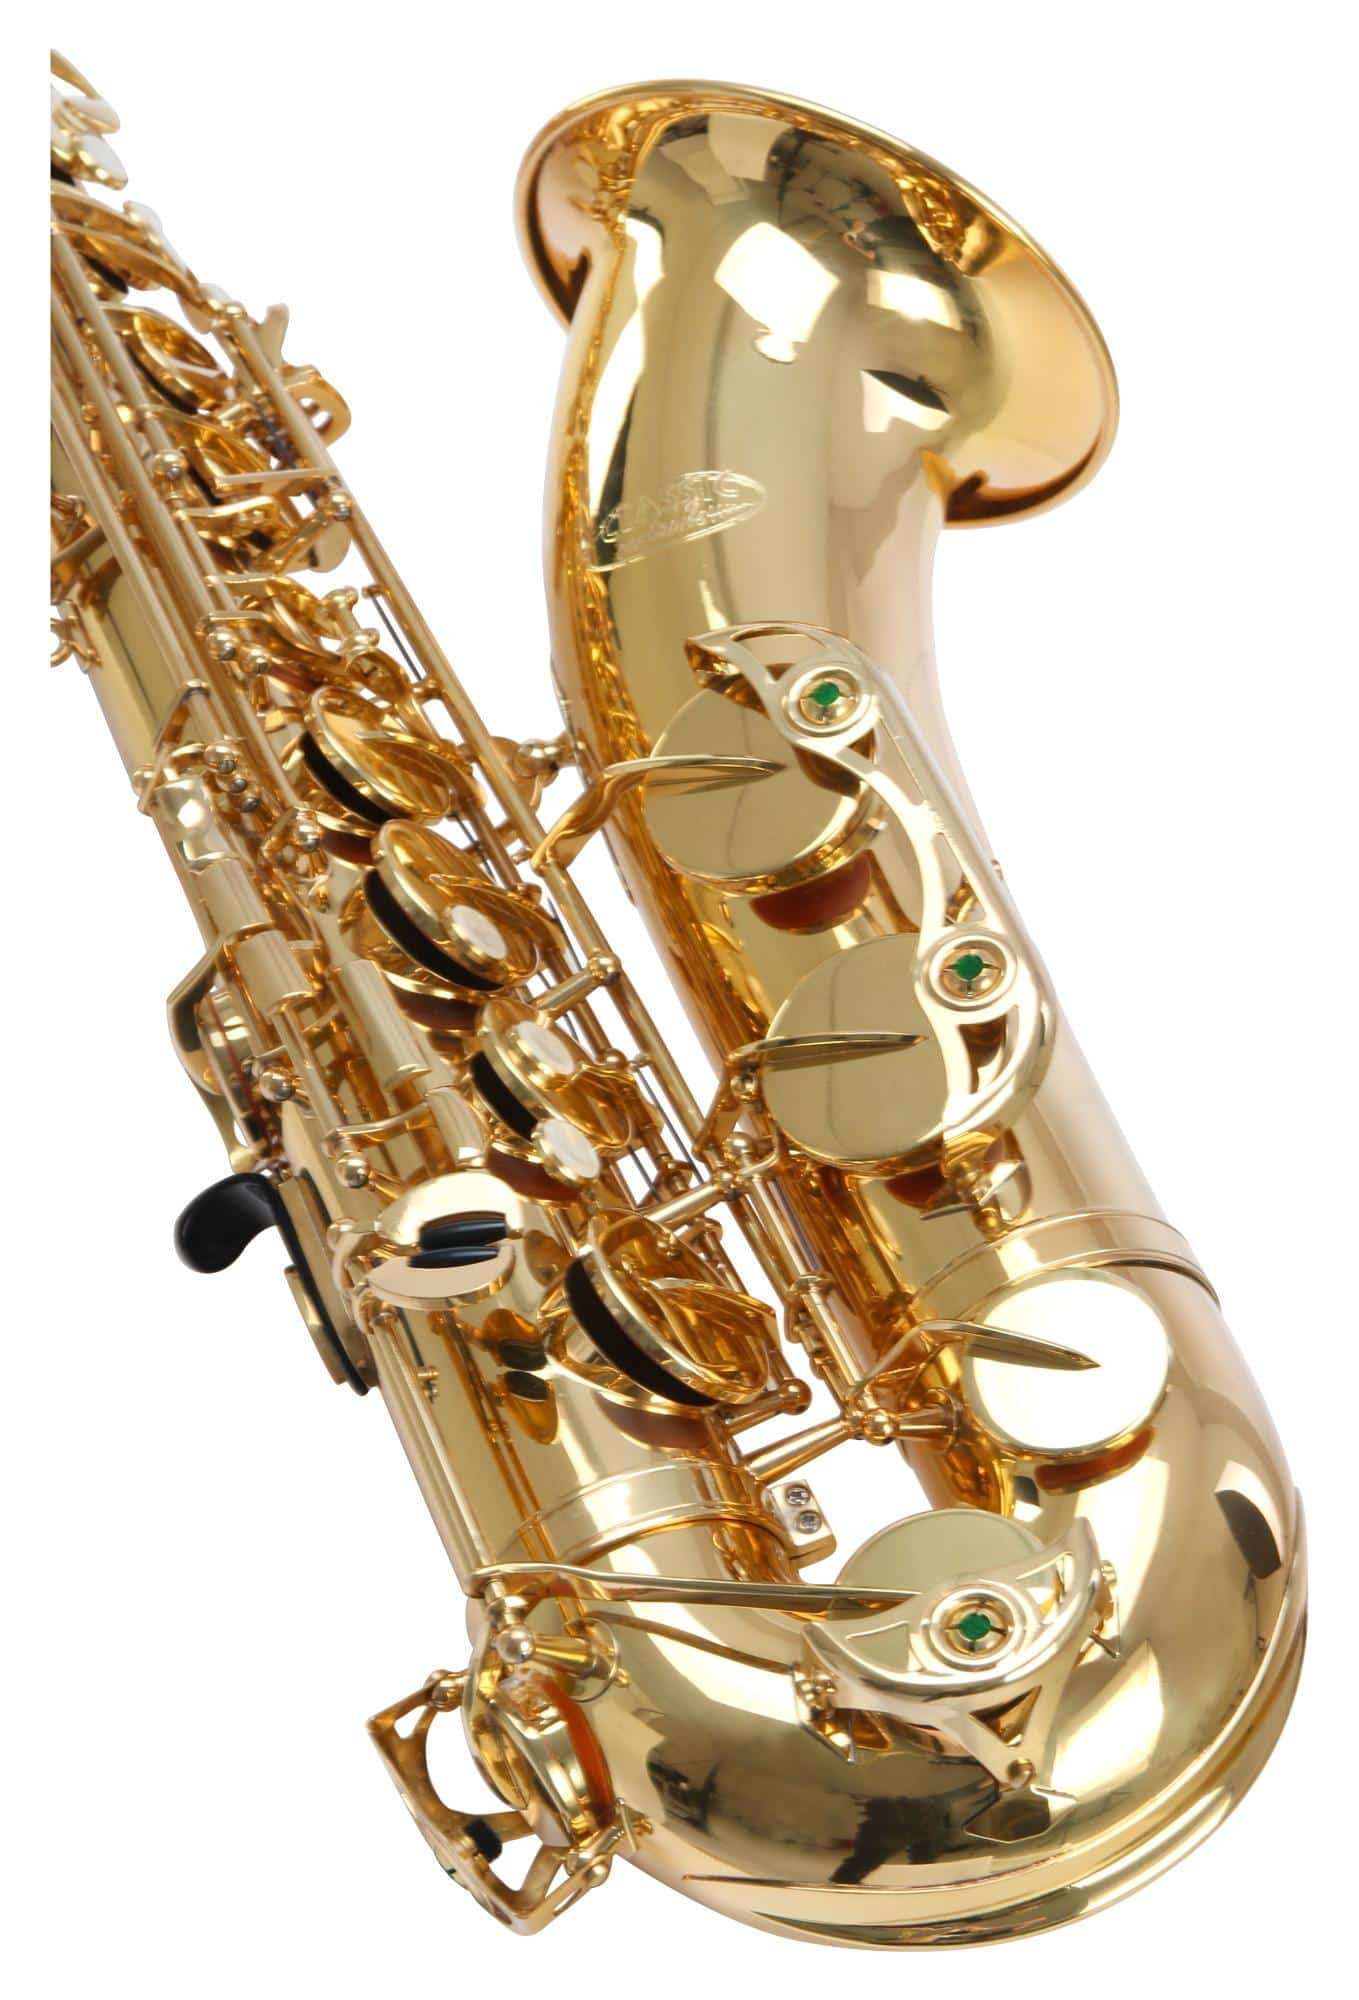 Classic cantabile winds ts 450 bb tenor saxophone for Classic house track with saxophone